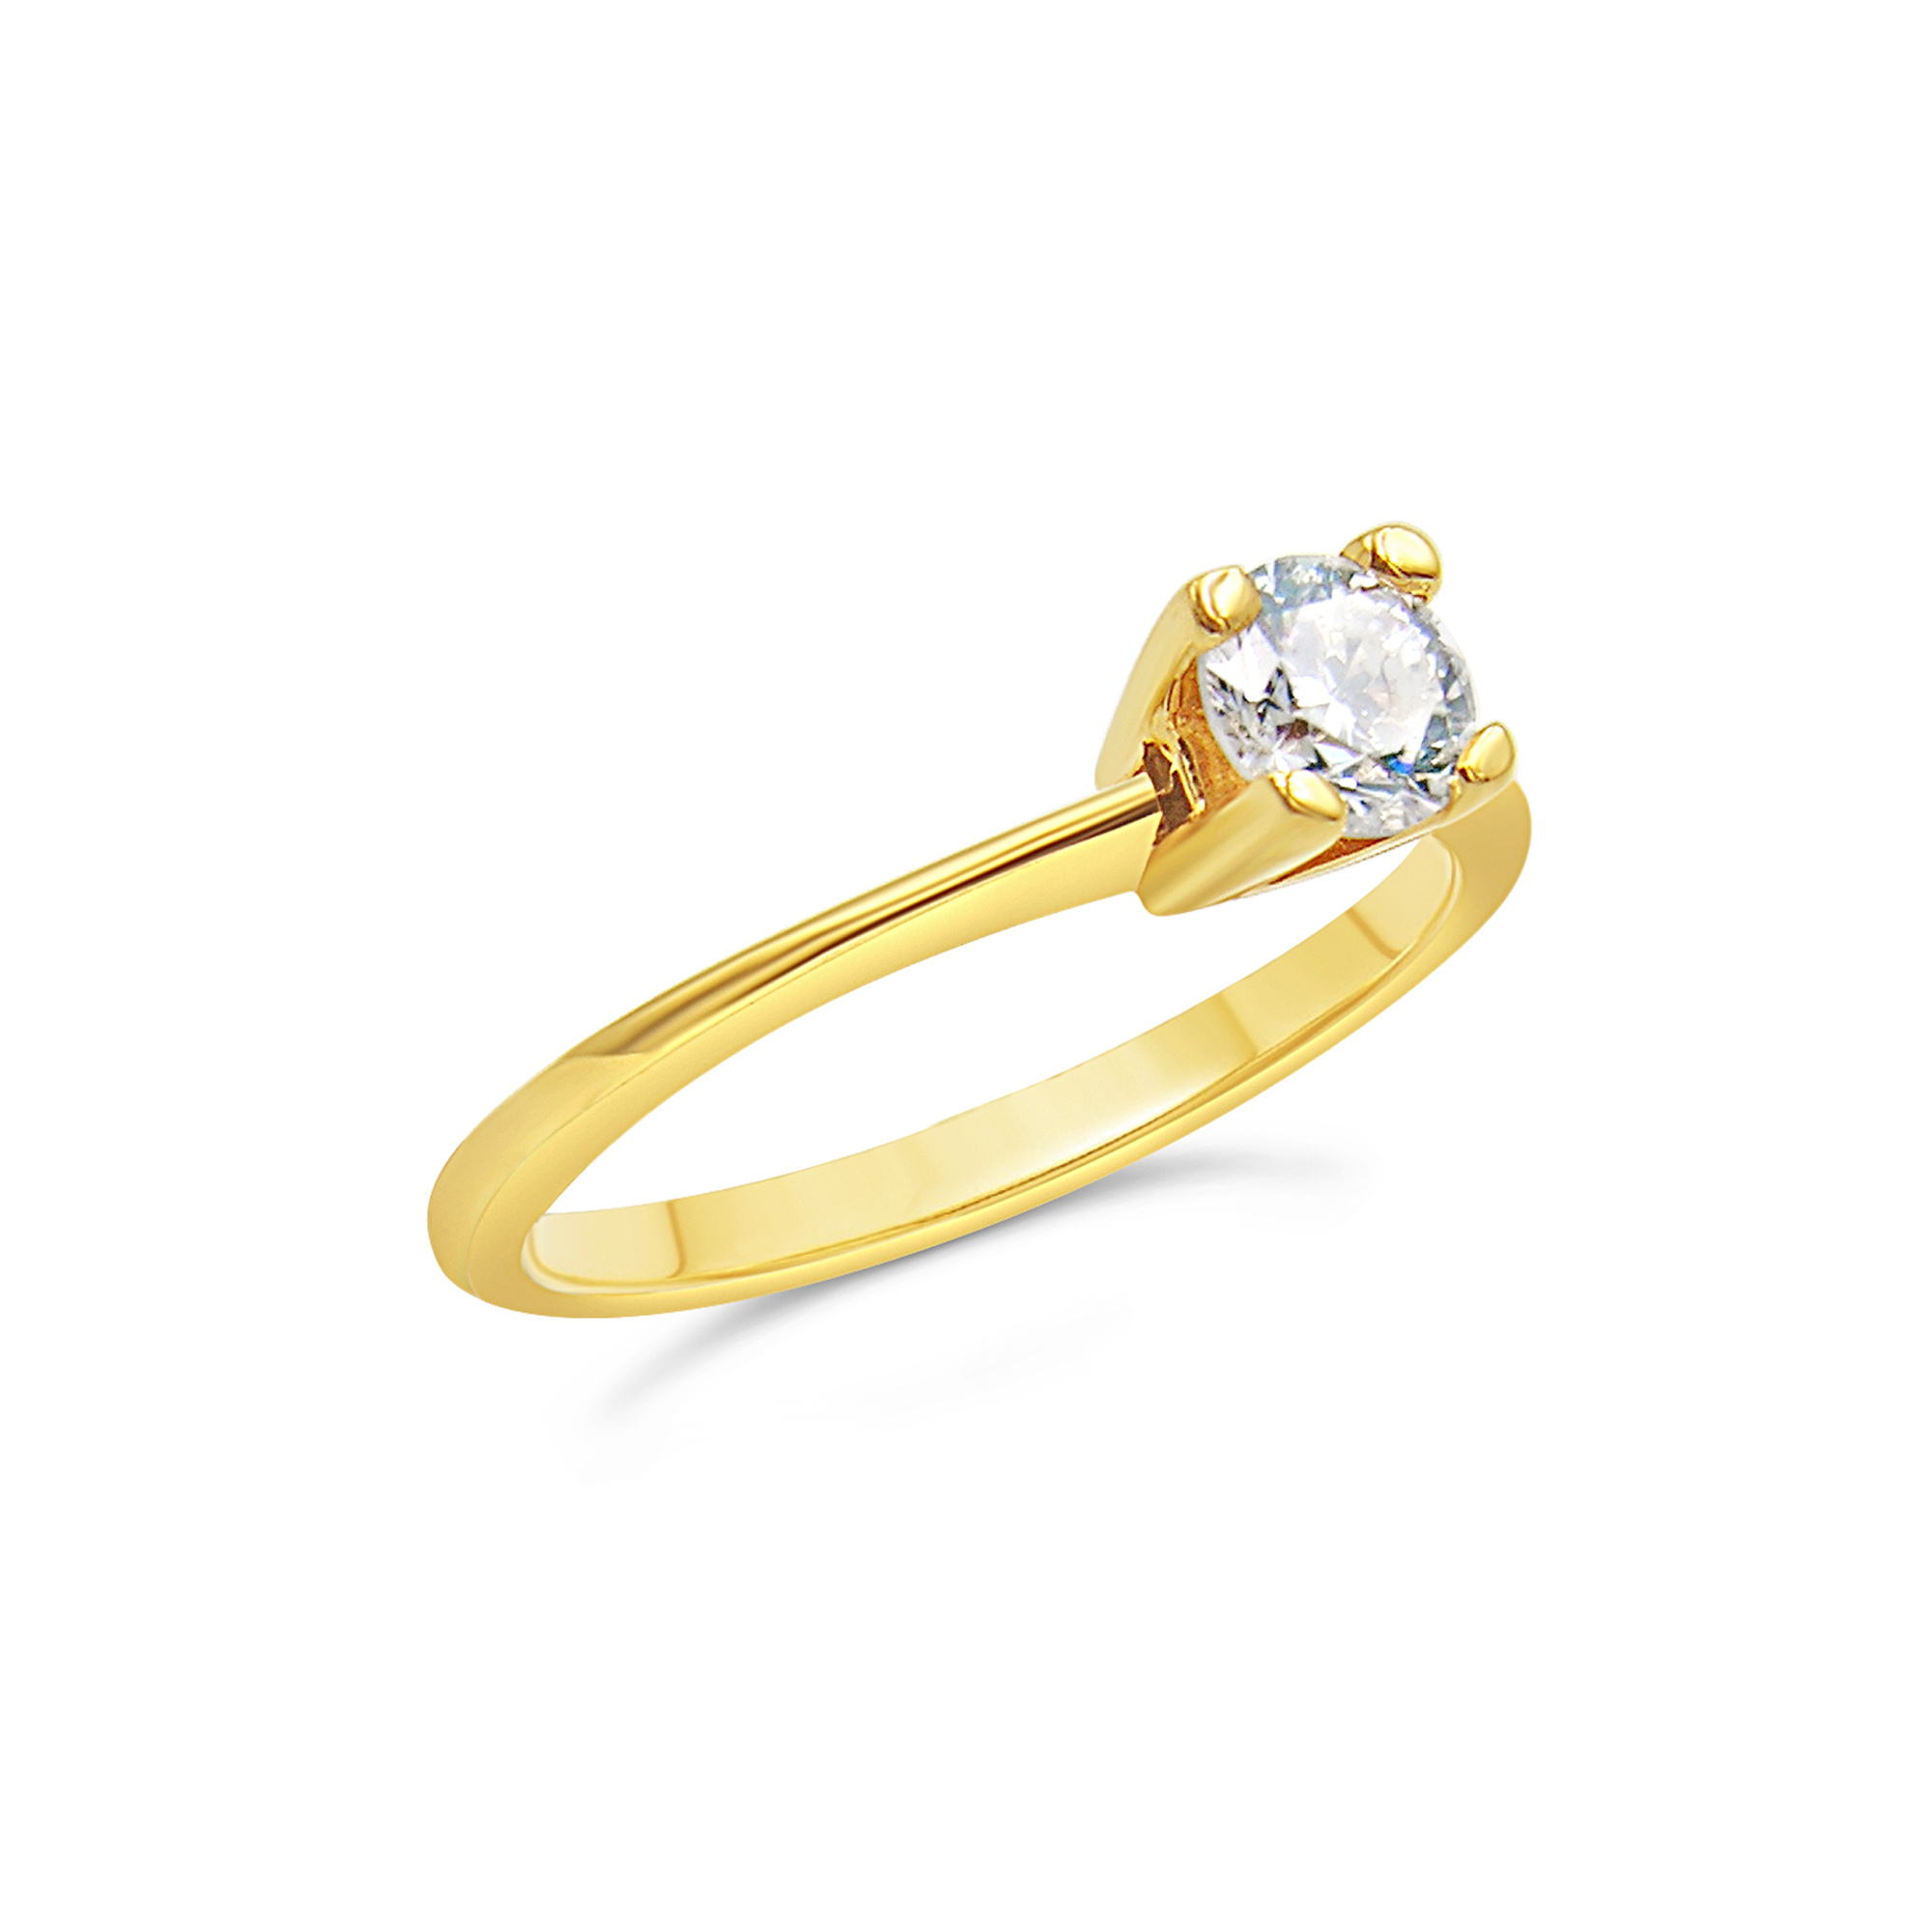 18kt yellow gold engagement ring with 0.53 ct diamond